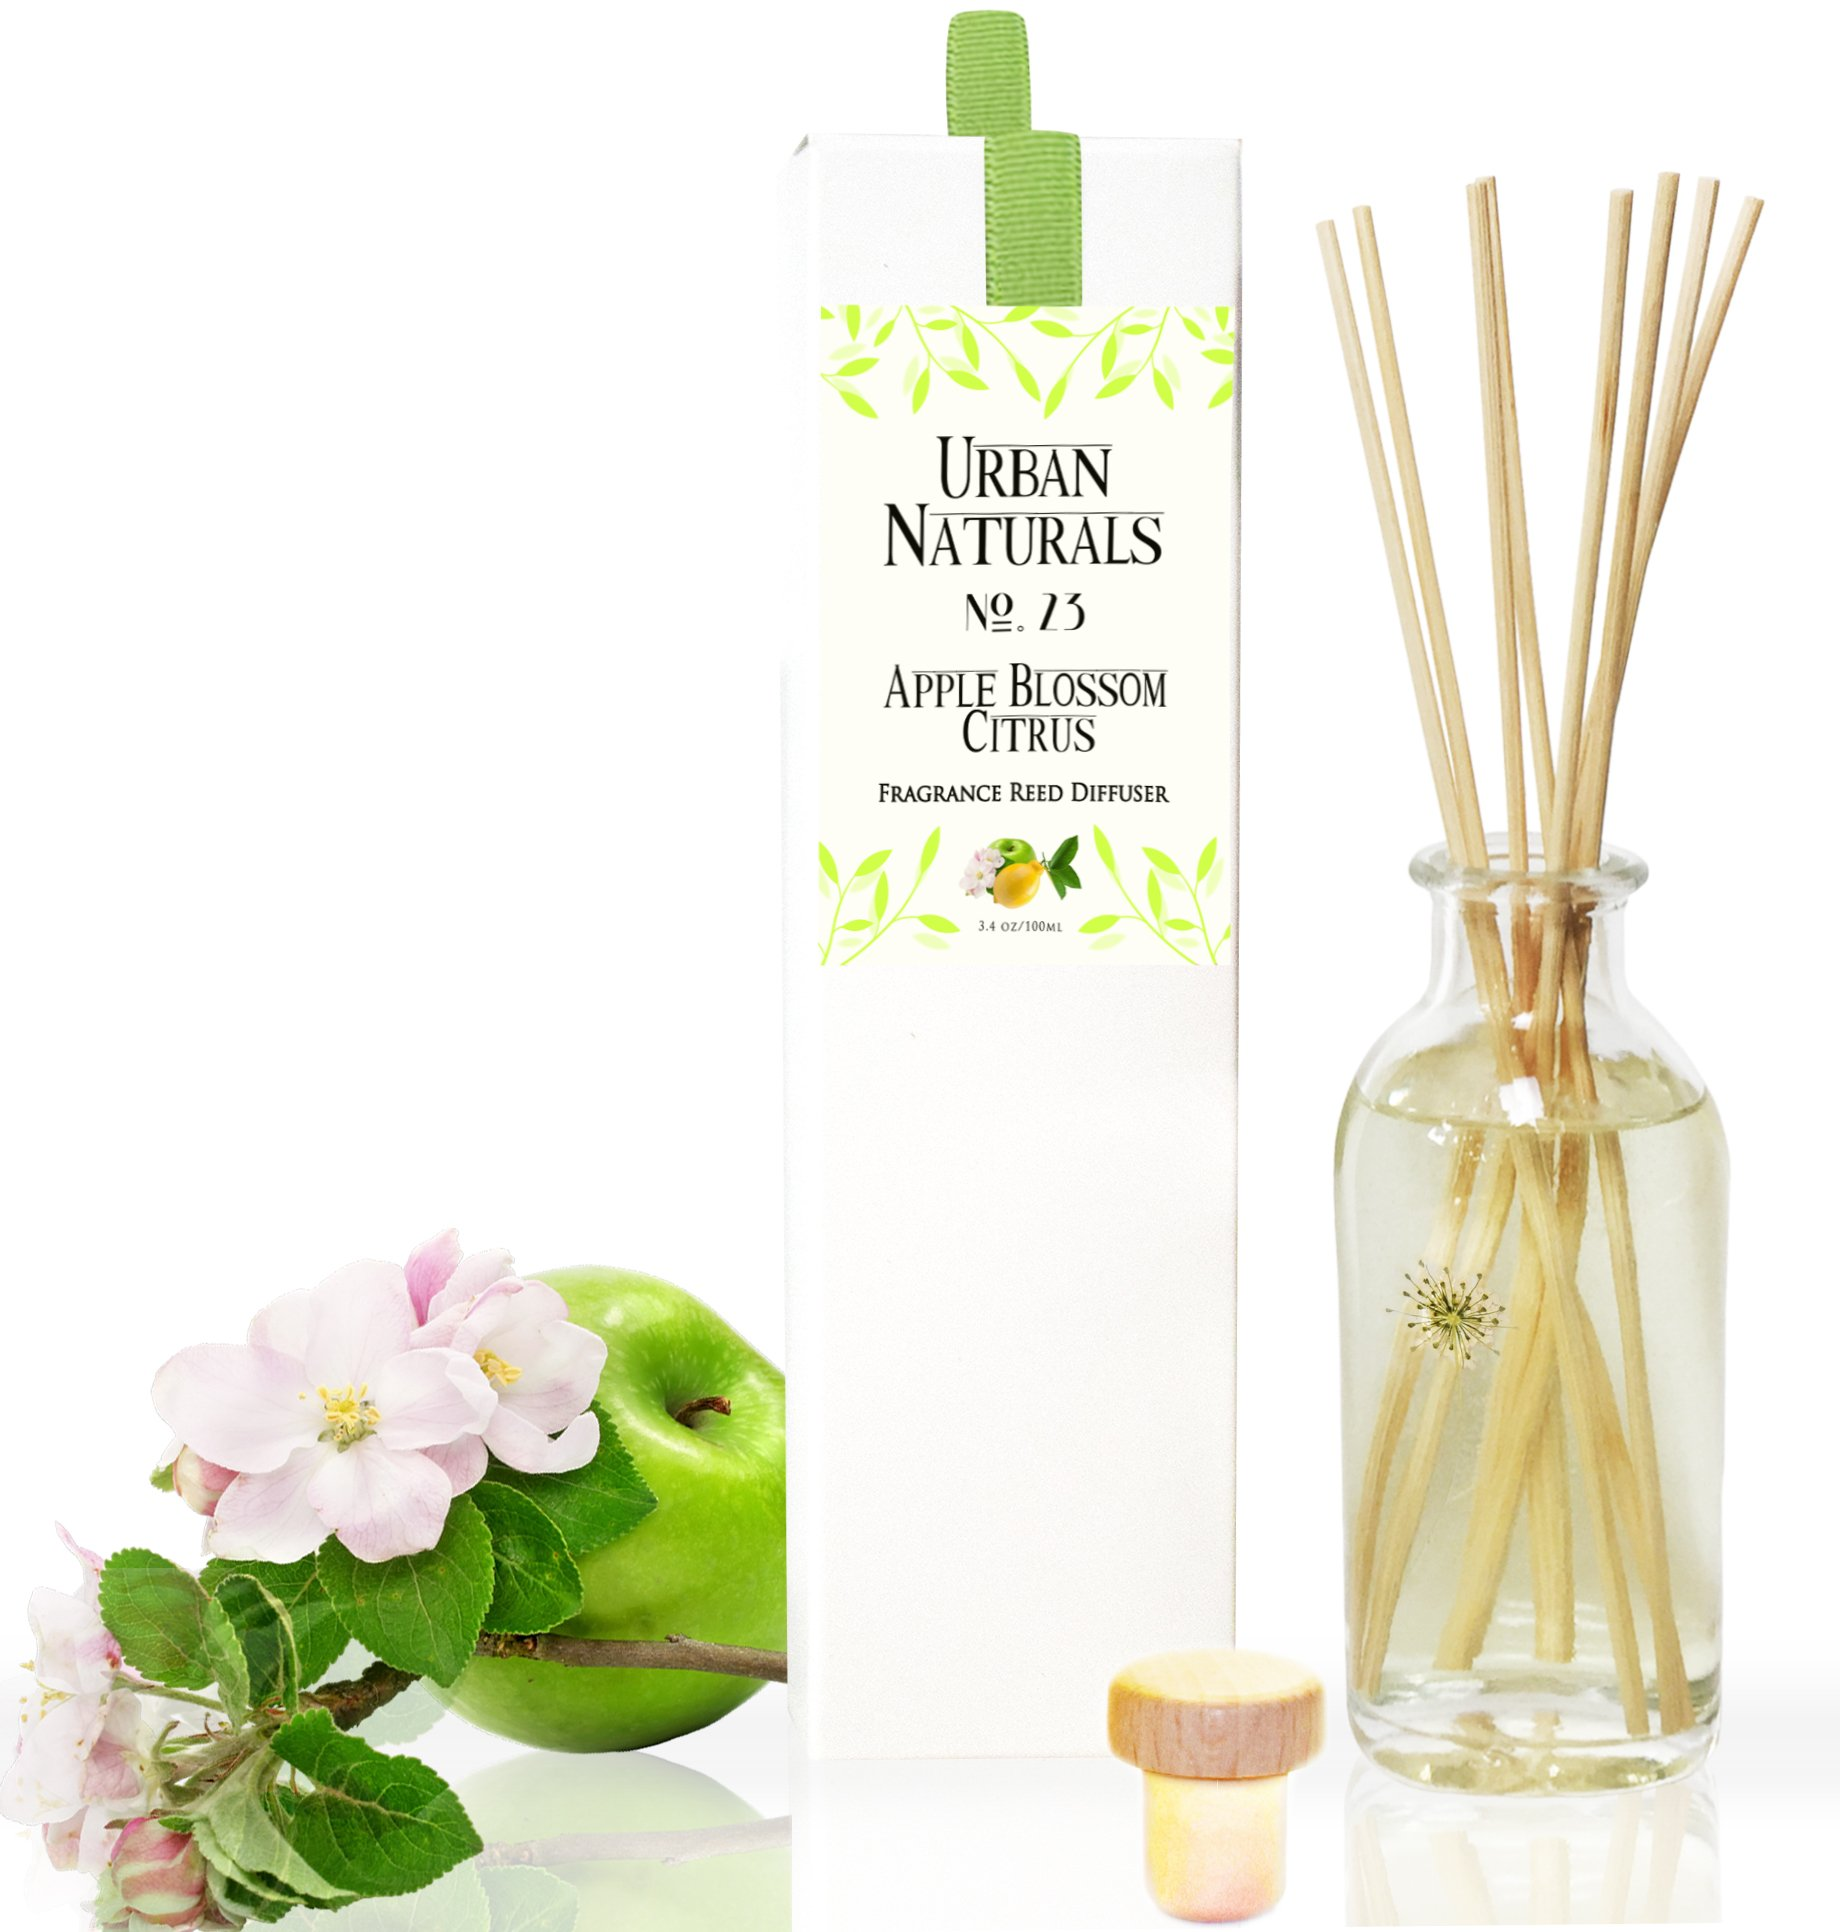 Urban Naturals Lightning Deal Apple Blossom & Citrus Home Reed Diffuser Gift Set | Scented Reed Sticks for Kitchen, Bathroom or Office | Green Apples, Italian Lemon, Juicy Pear, Water Lily